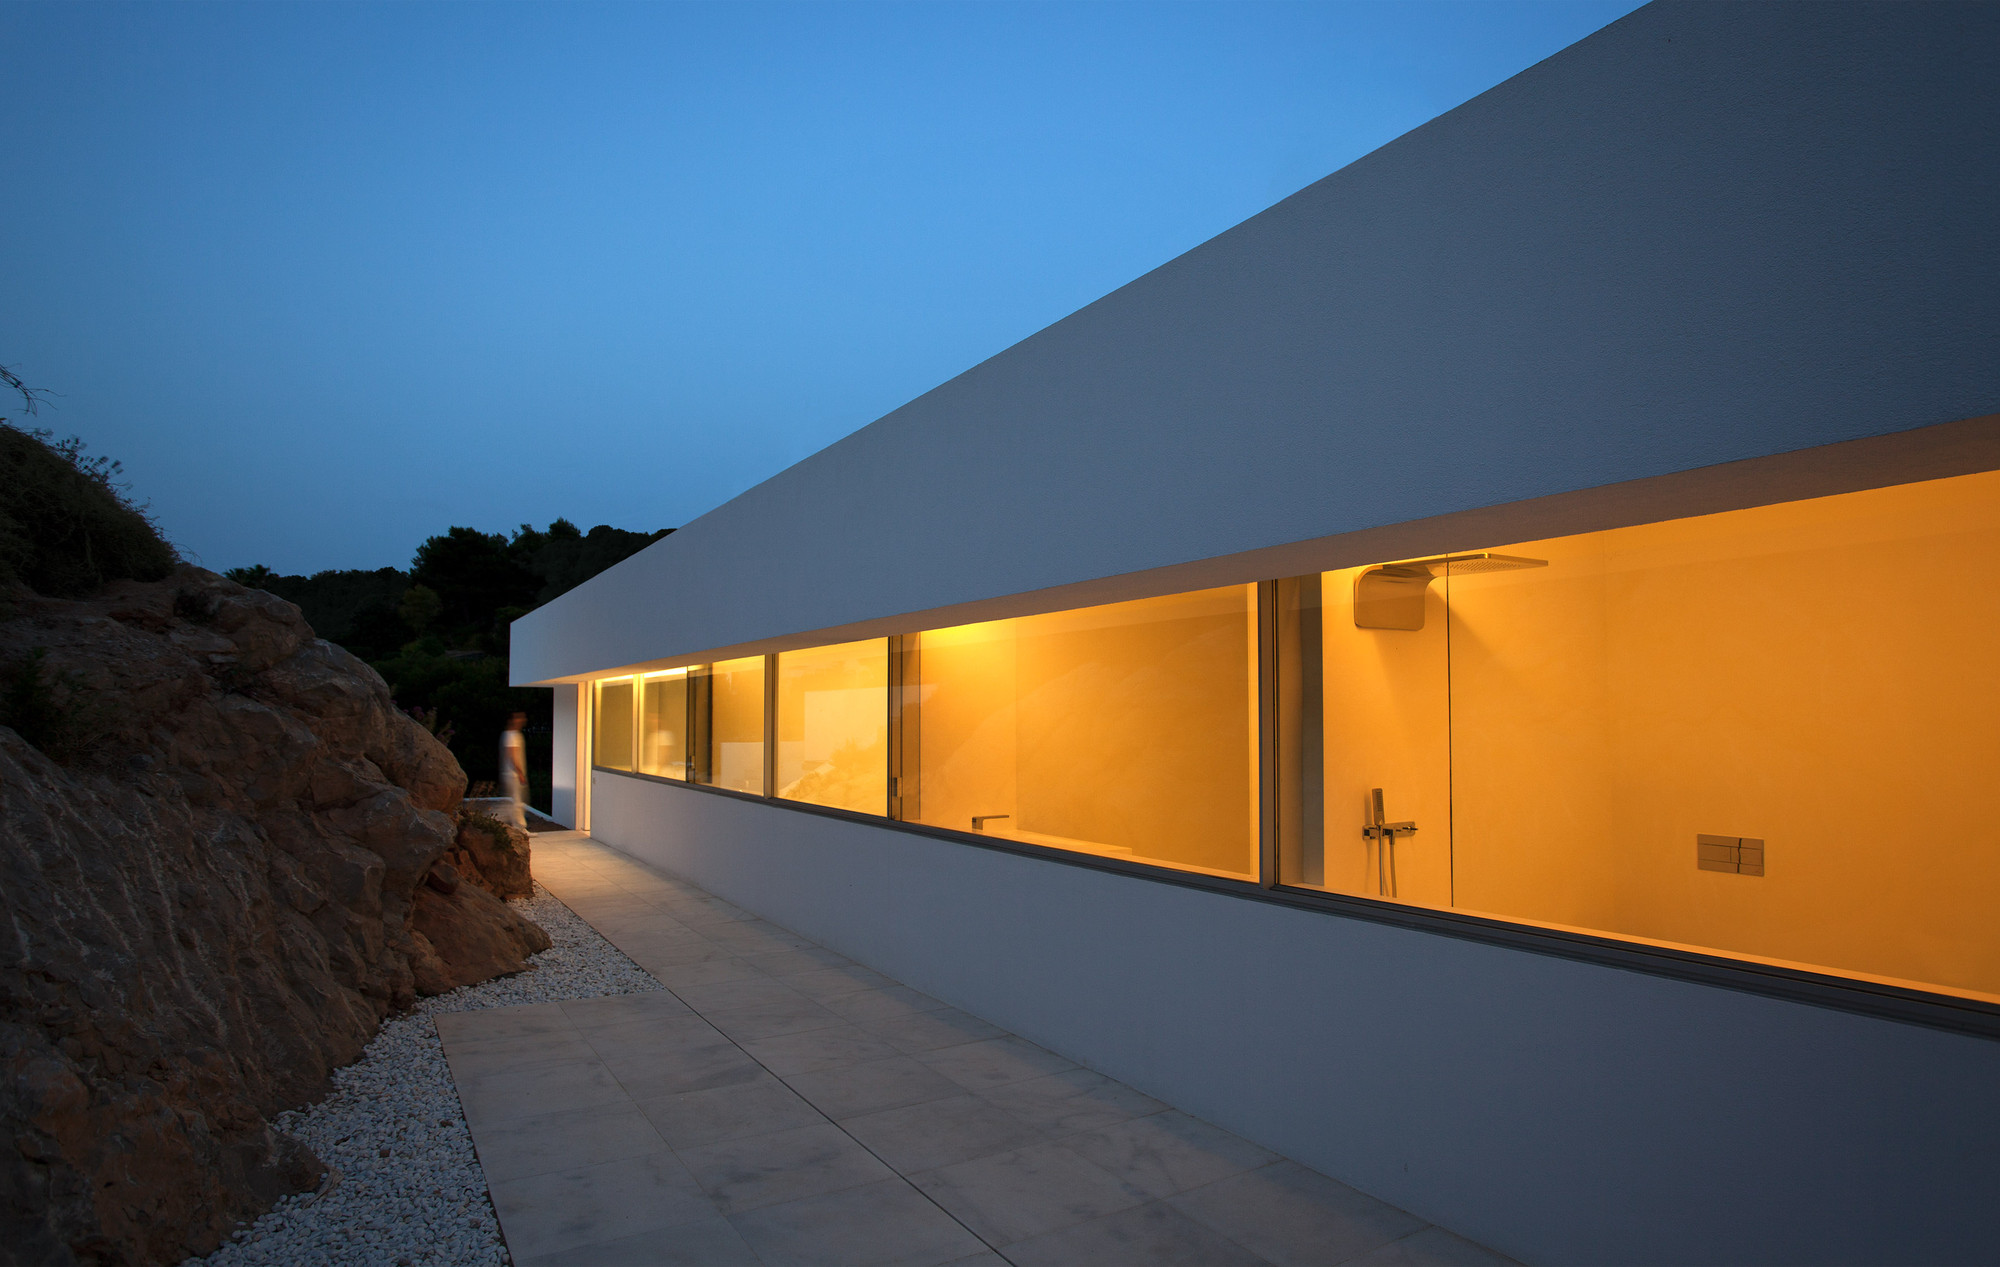 Gallery of house on the cliff fran silvestre arquitectos for Fran silvestre house on the cliff